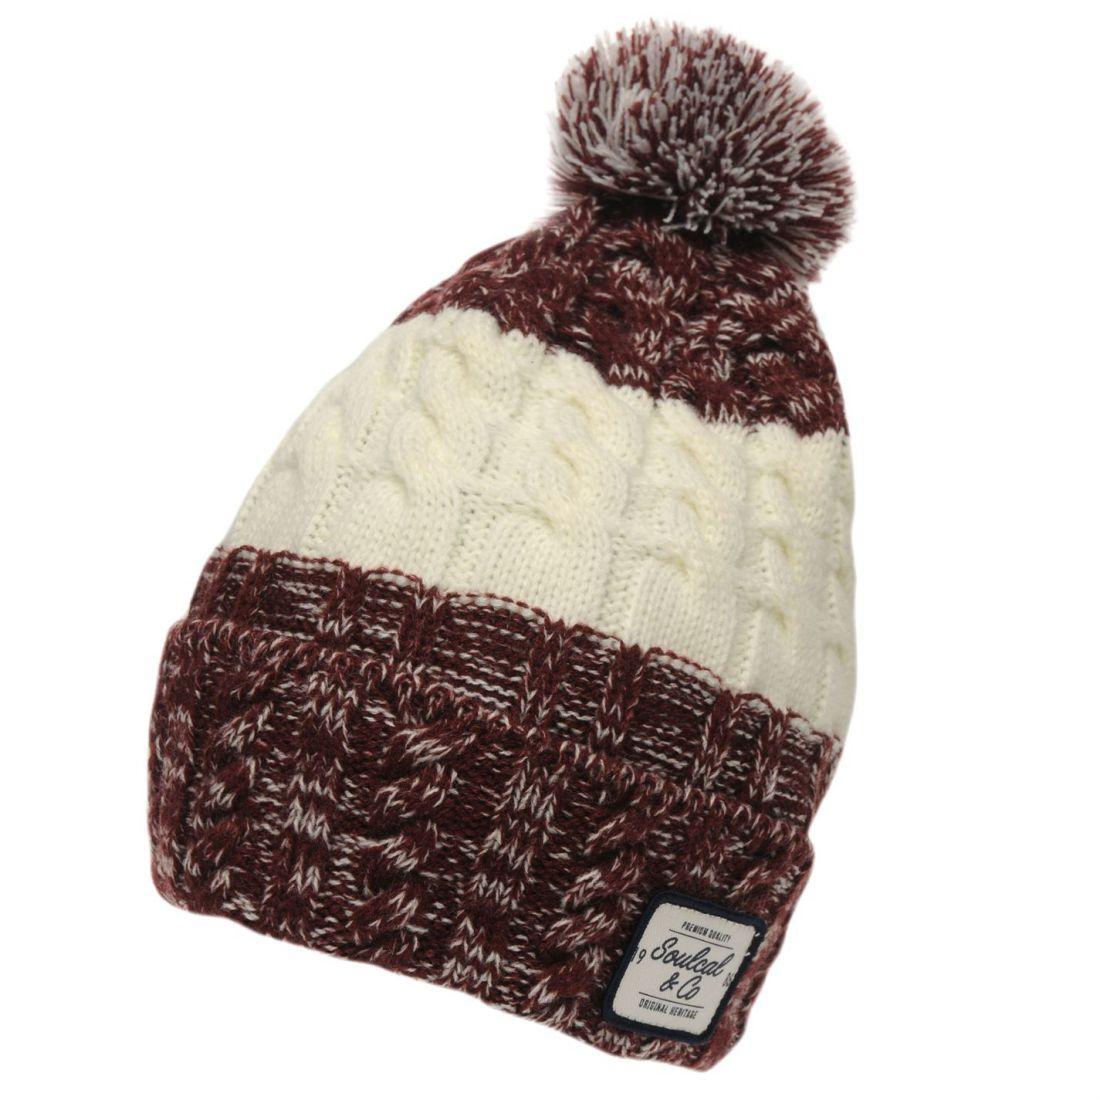 7a908f06cf6 WOMENS SOULCAL CAL Bobble Hat New - EUR 4